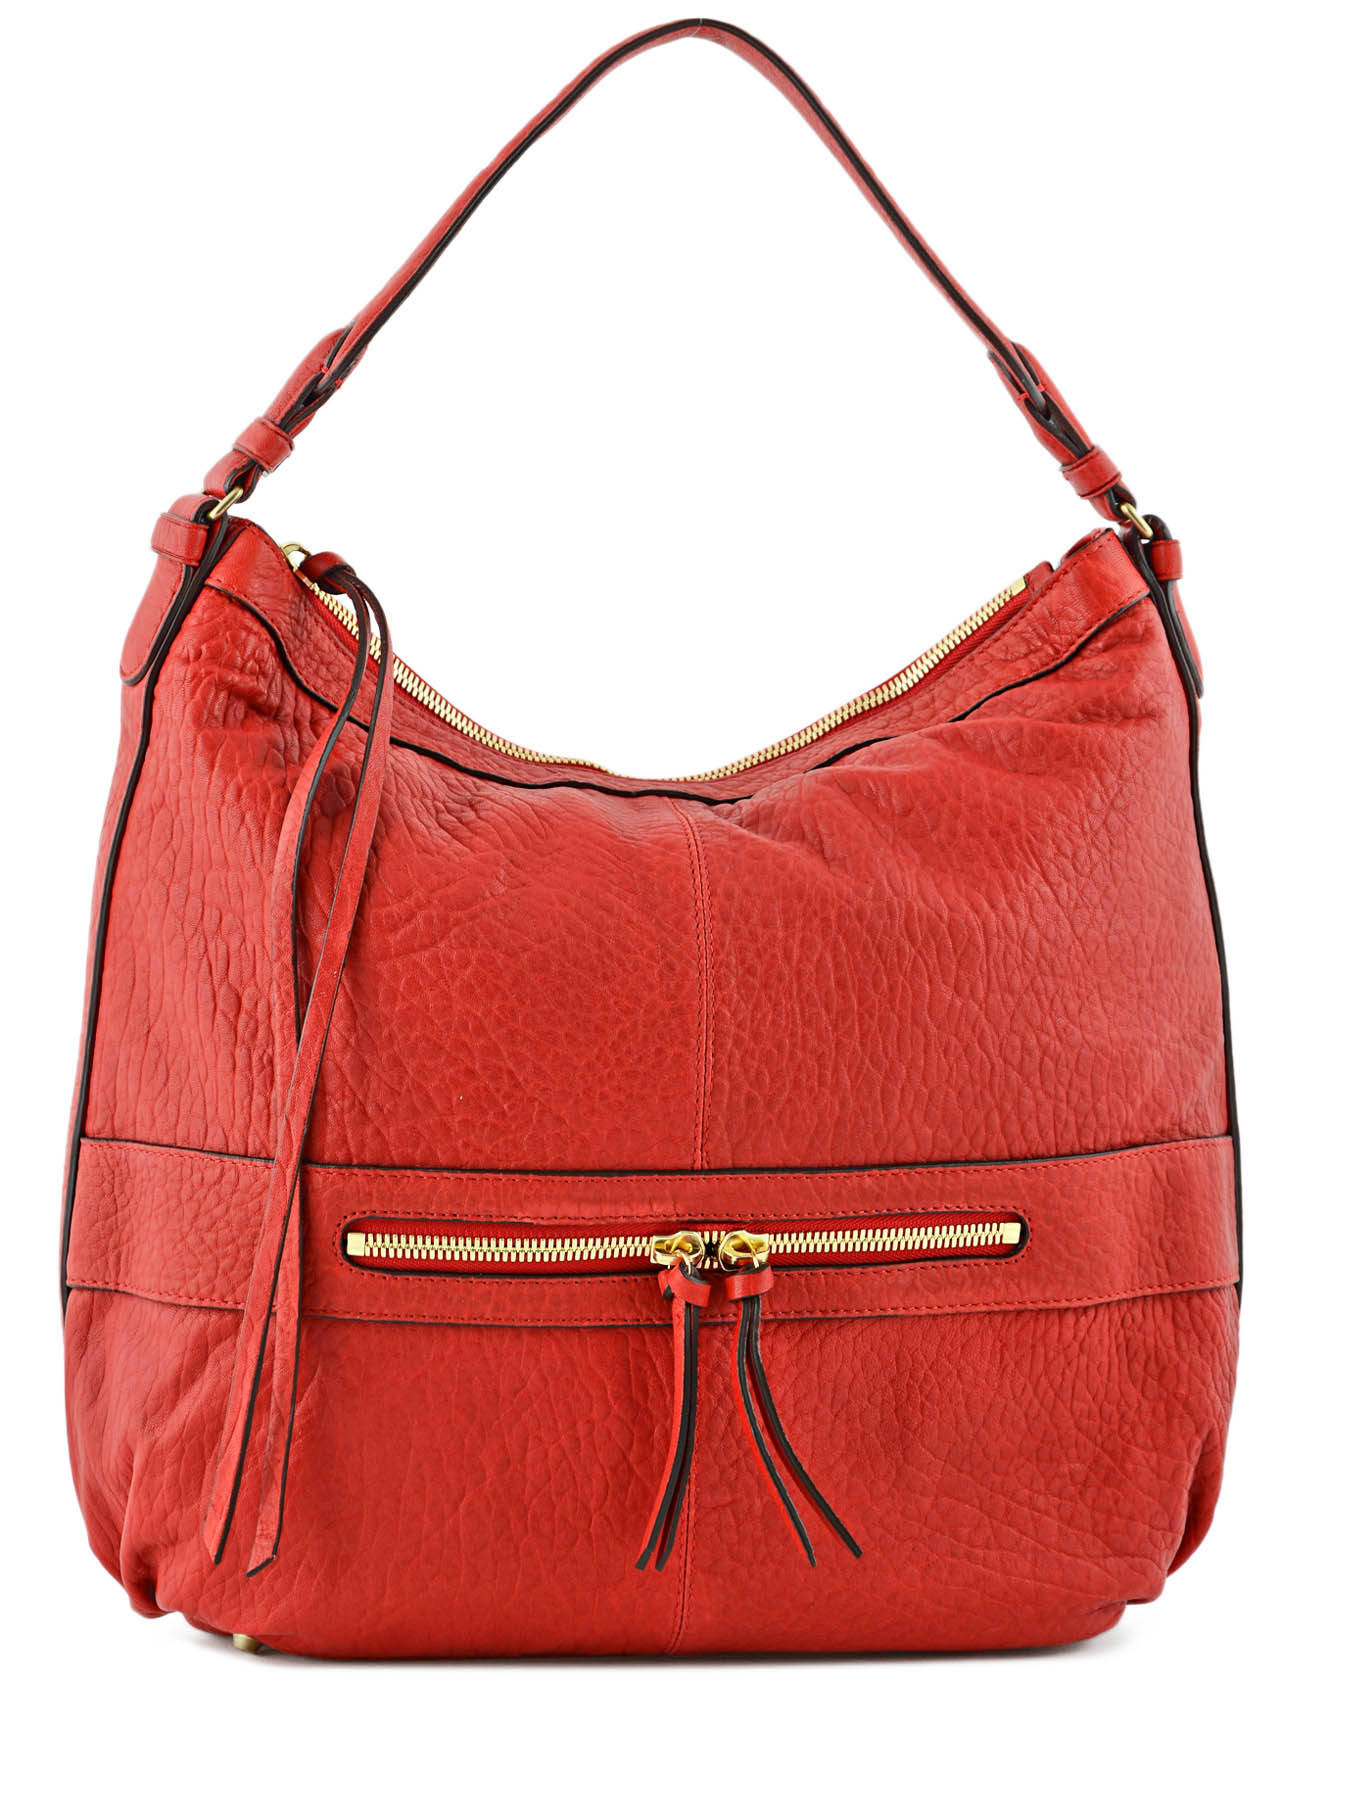 ... Sac Besace Midday Bubble Cuir Gerard darel Rouge bubble DFS02403 ... 473d76ea87a8